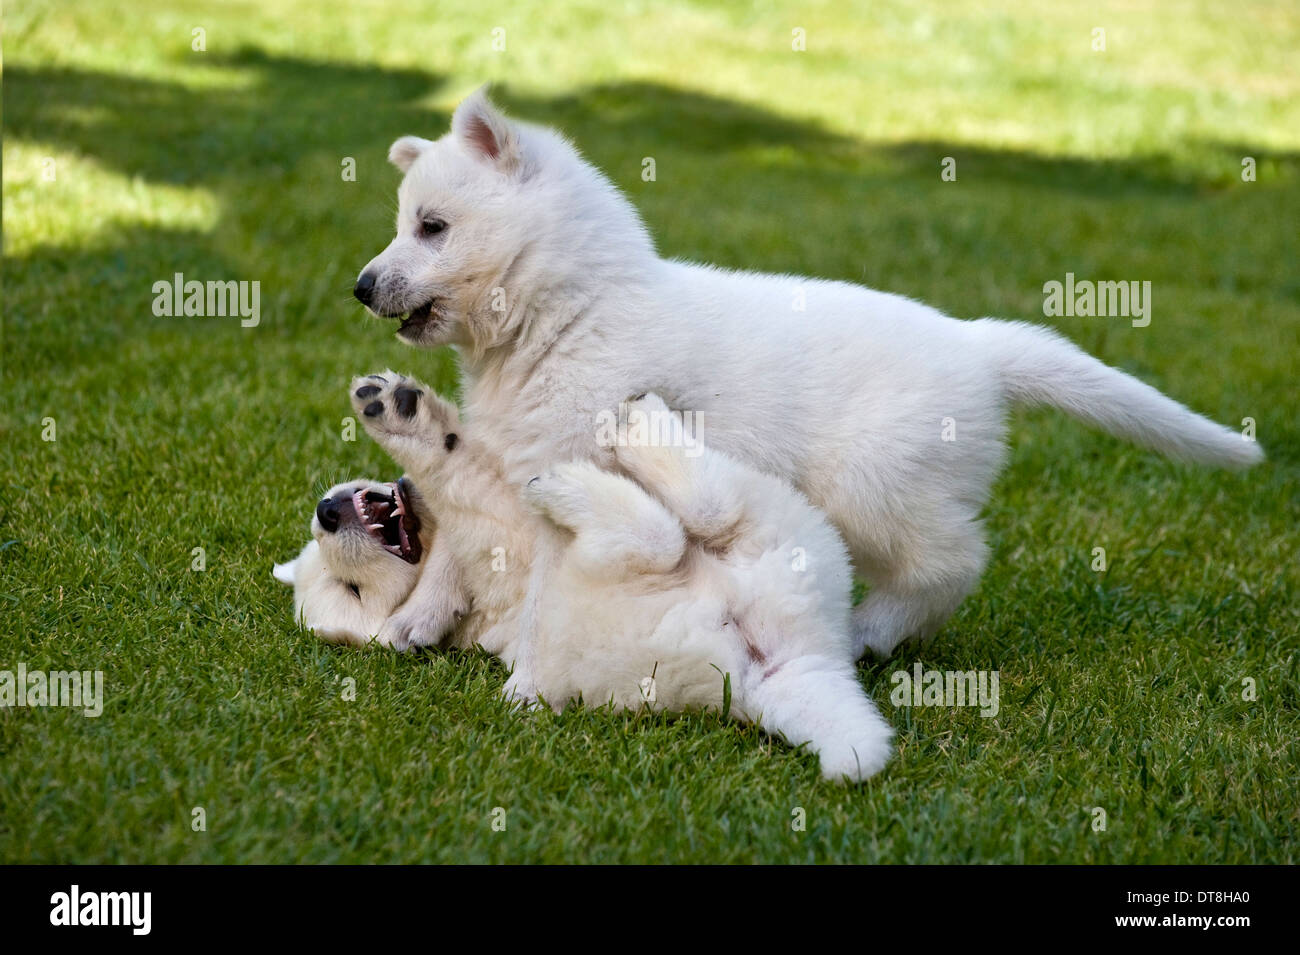 Berger Blanc Suisse Two Puppies 5 Weeks Old Squabbling On A Lawn